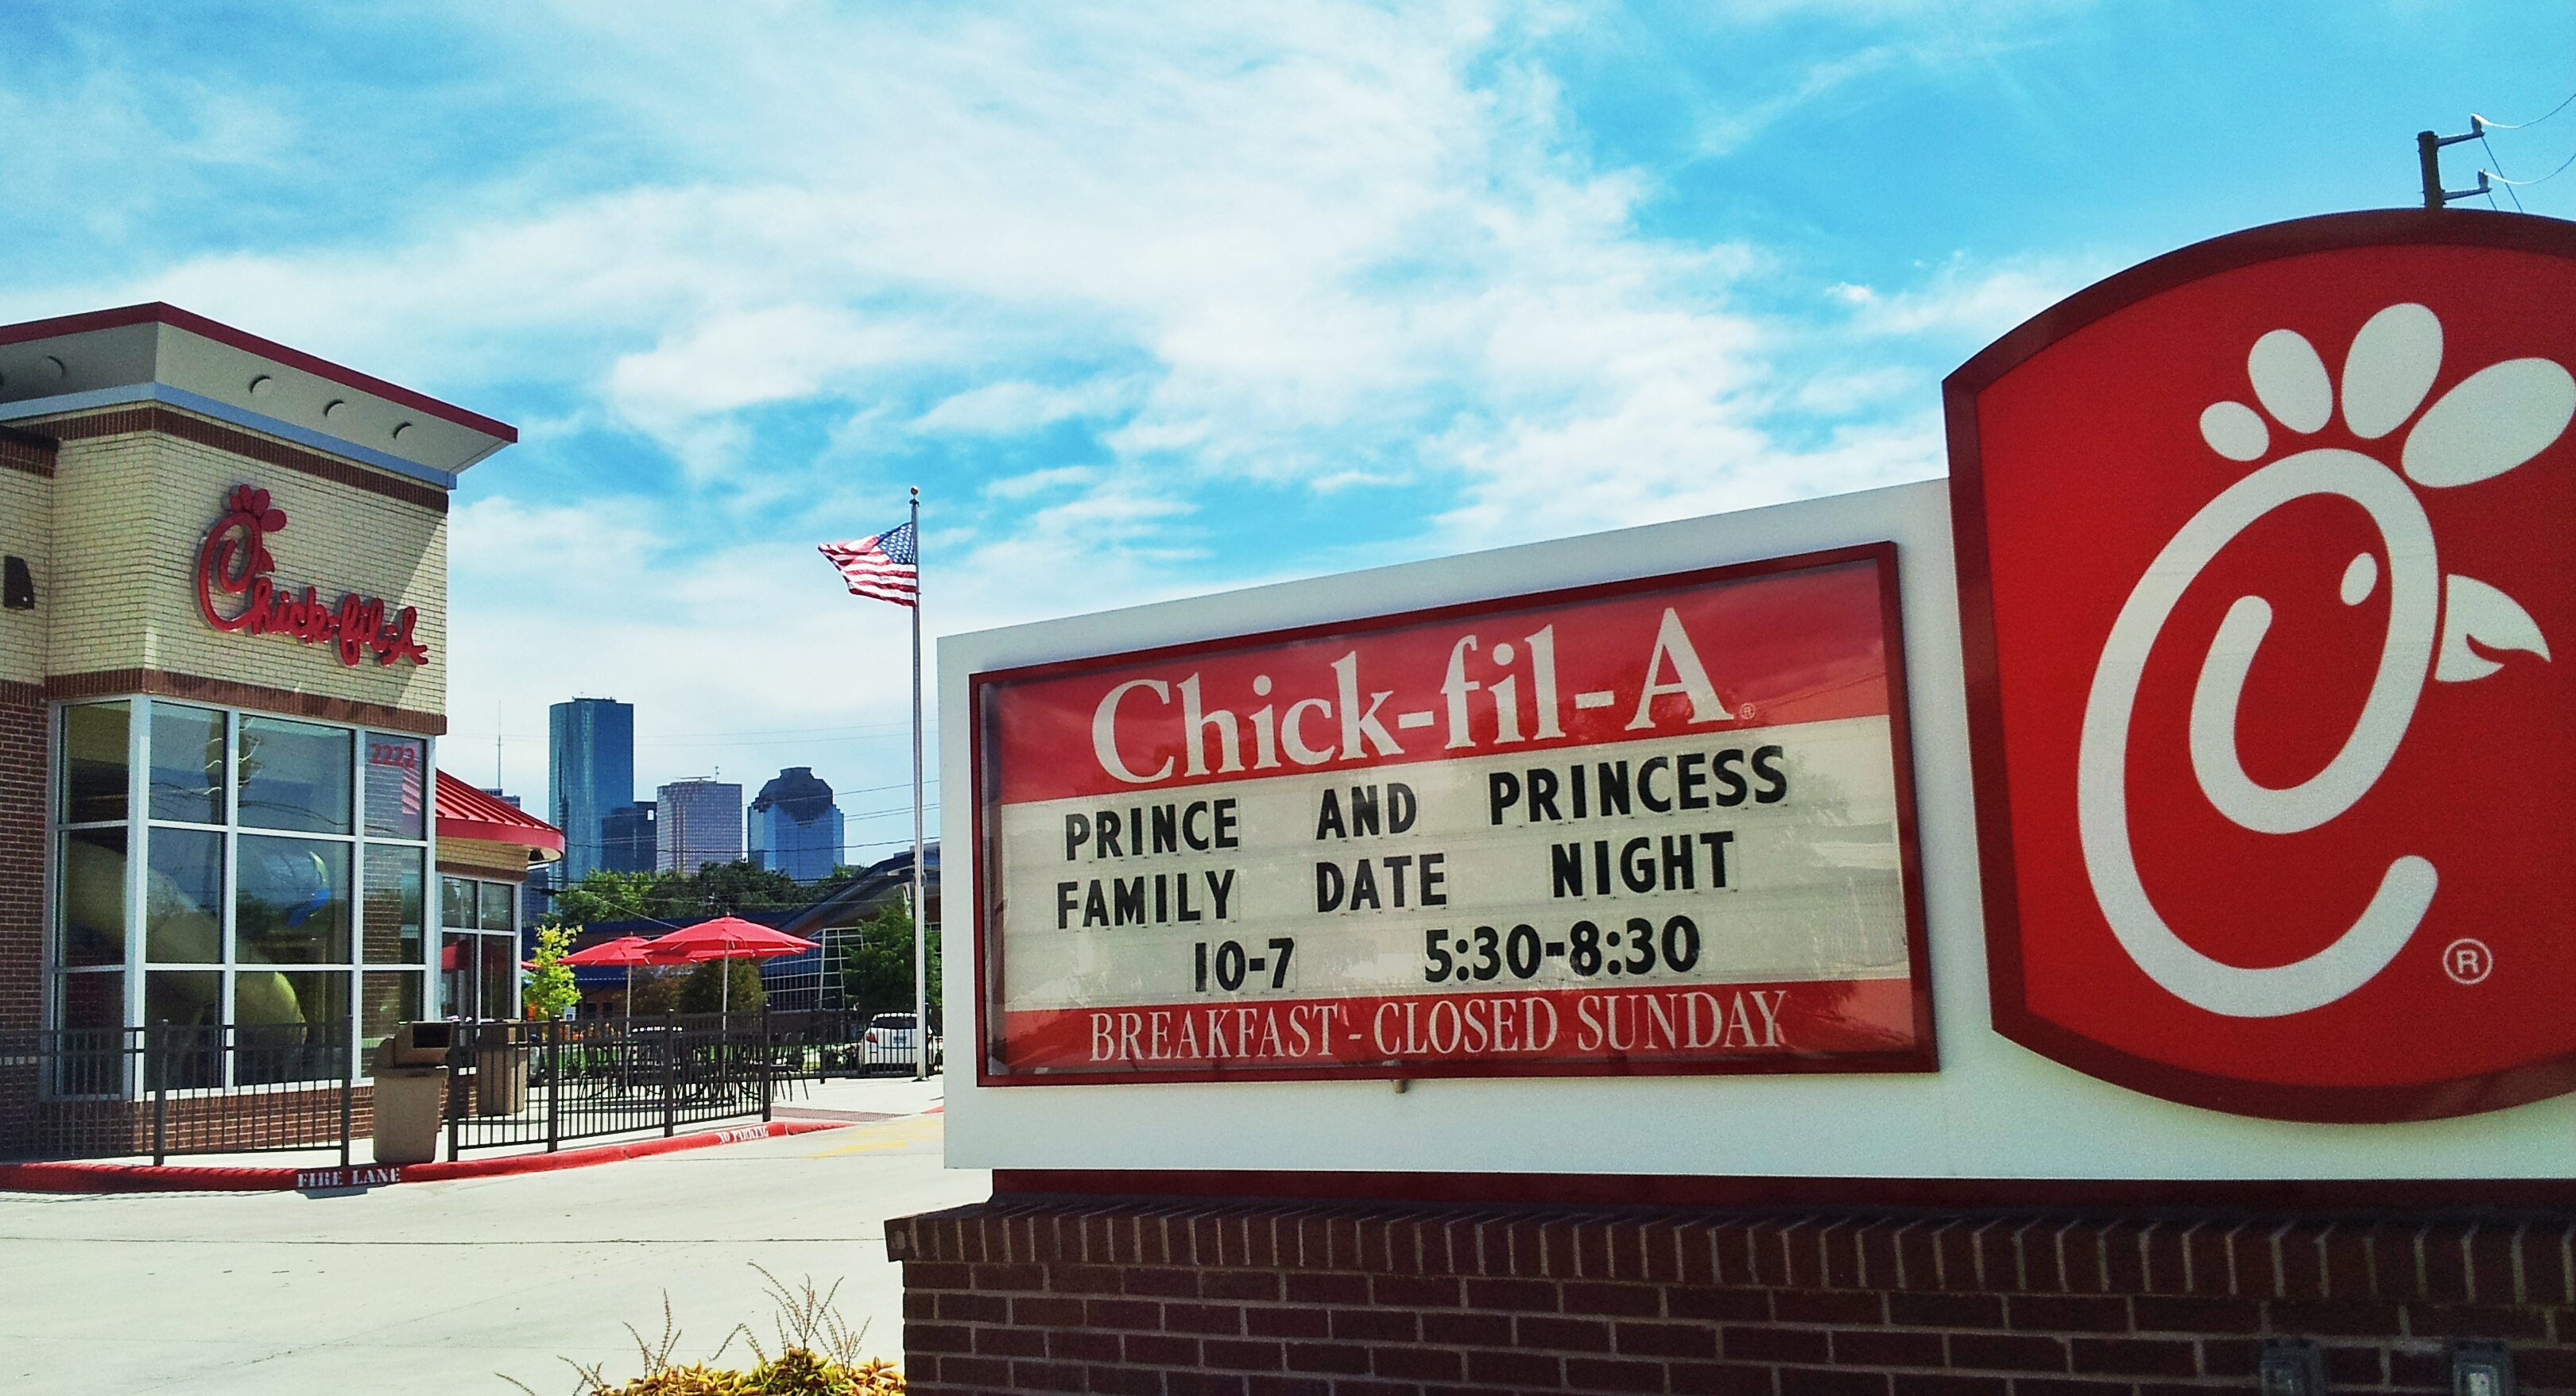 Houston Area Fil A Restaurants Invite 4 000 Families To Dinner At Family Date Night Events Business Wire